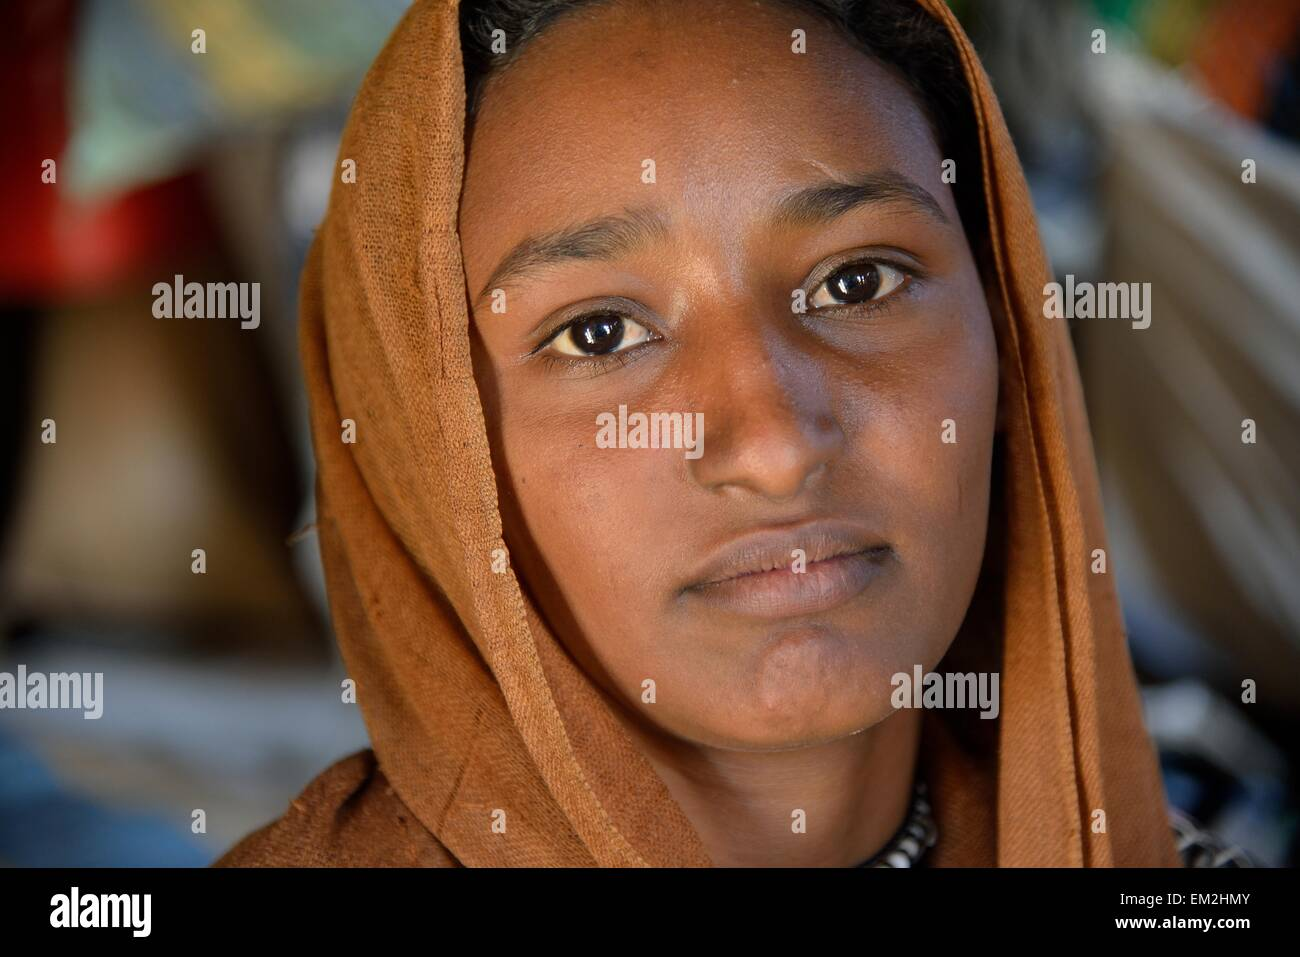 Young girl from a nomadic tribe, wearing headgear, portrait, Bayuda Desert, in Karima, Nubia, Northern Sudan, Sudan - Stock Image